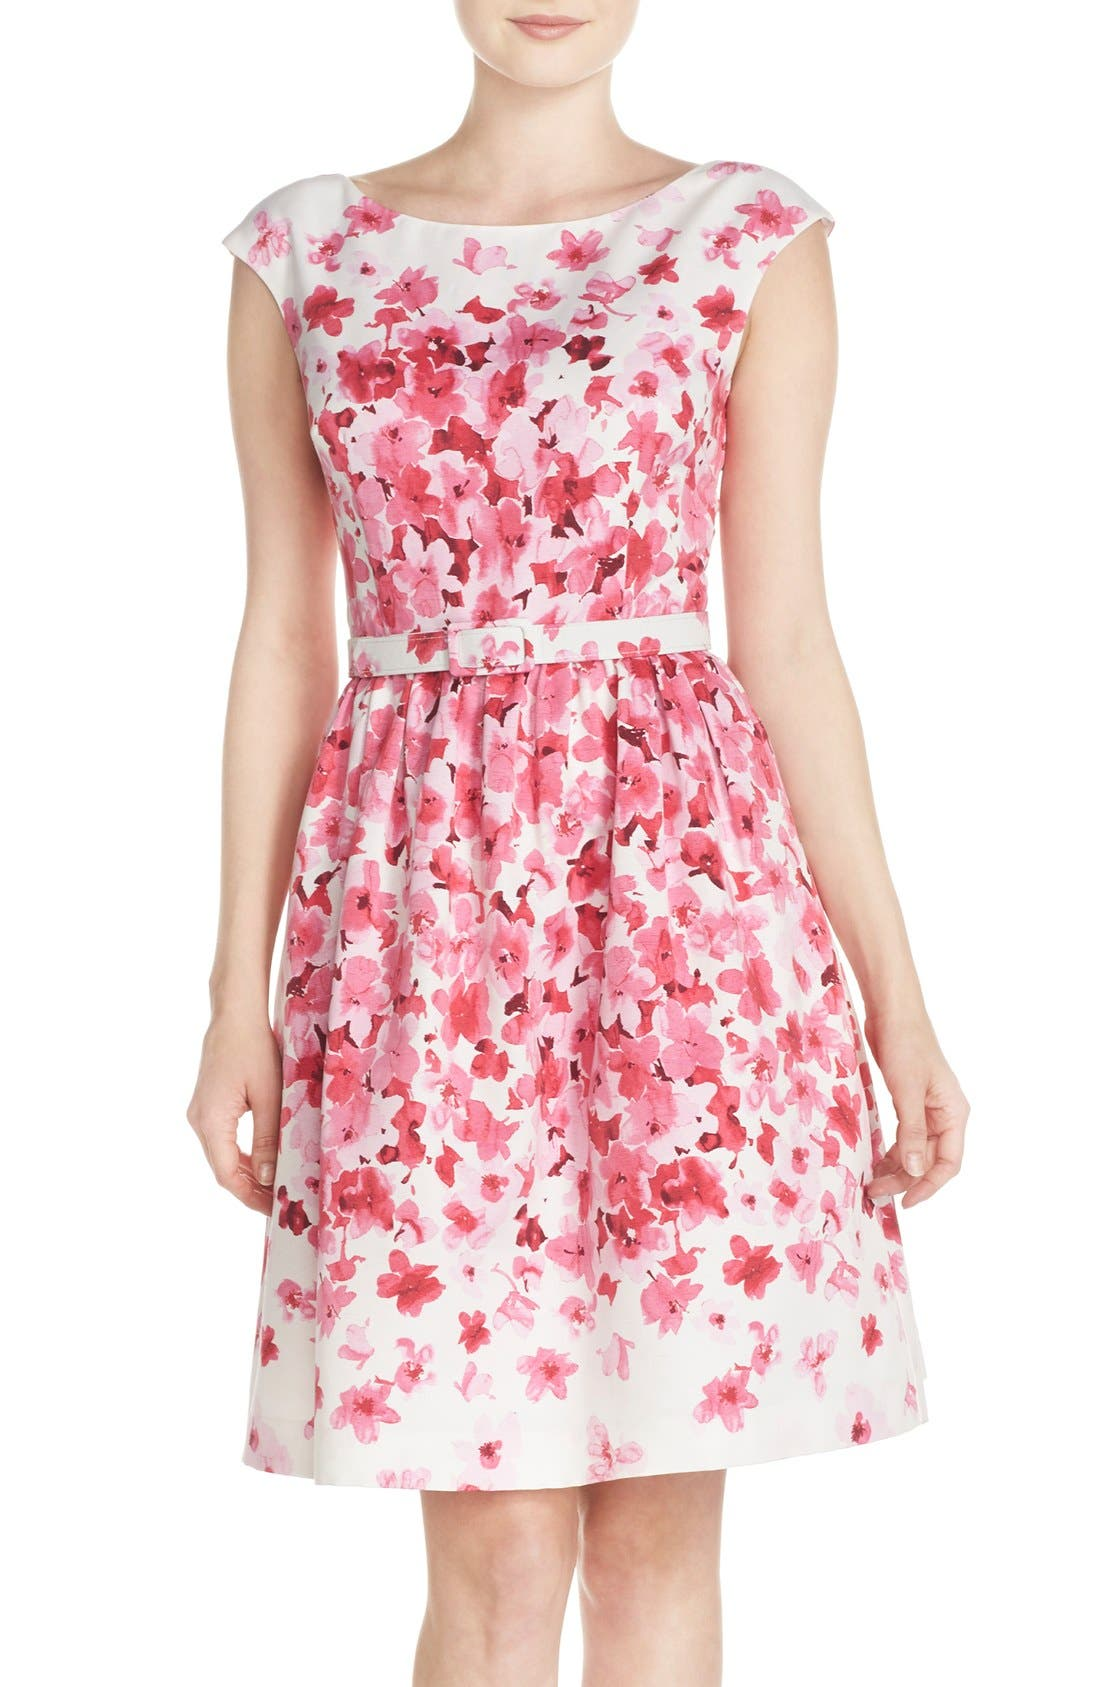 Alternate Image 1 Selected - Eliza J Belted Floral Faille Fit & Flare Dress